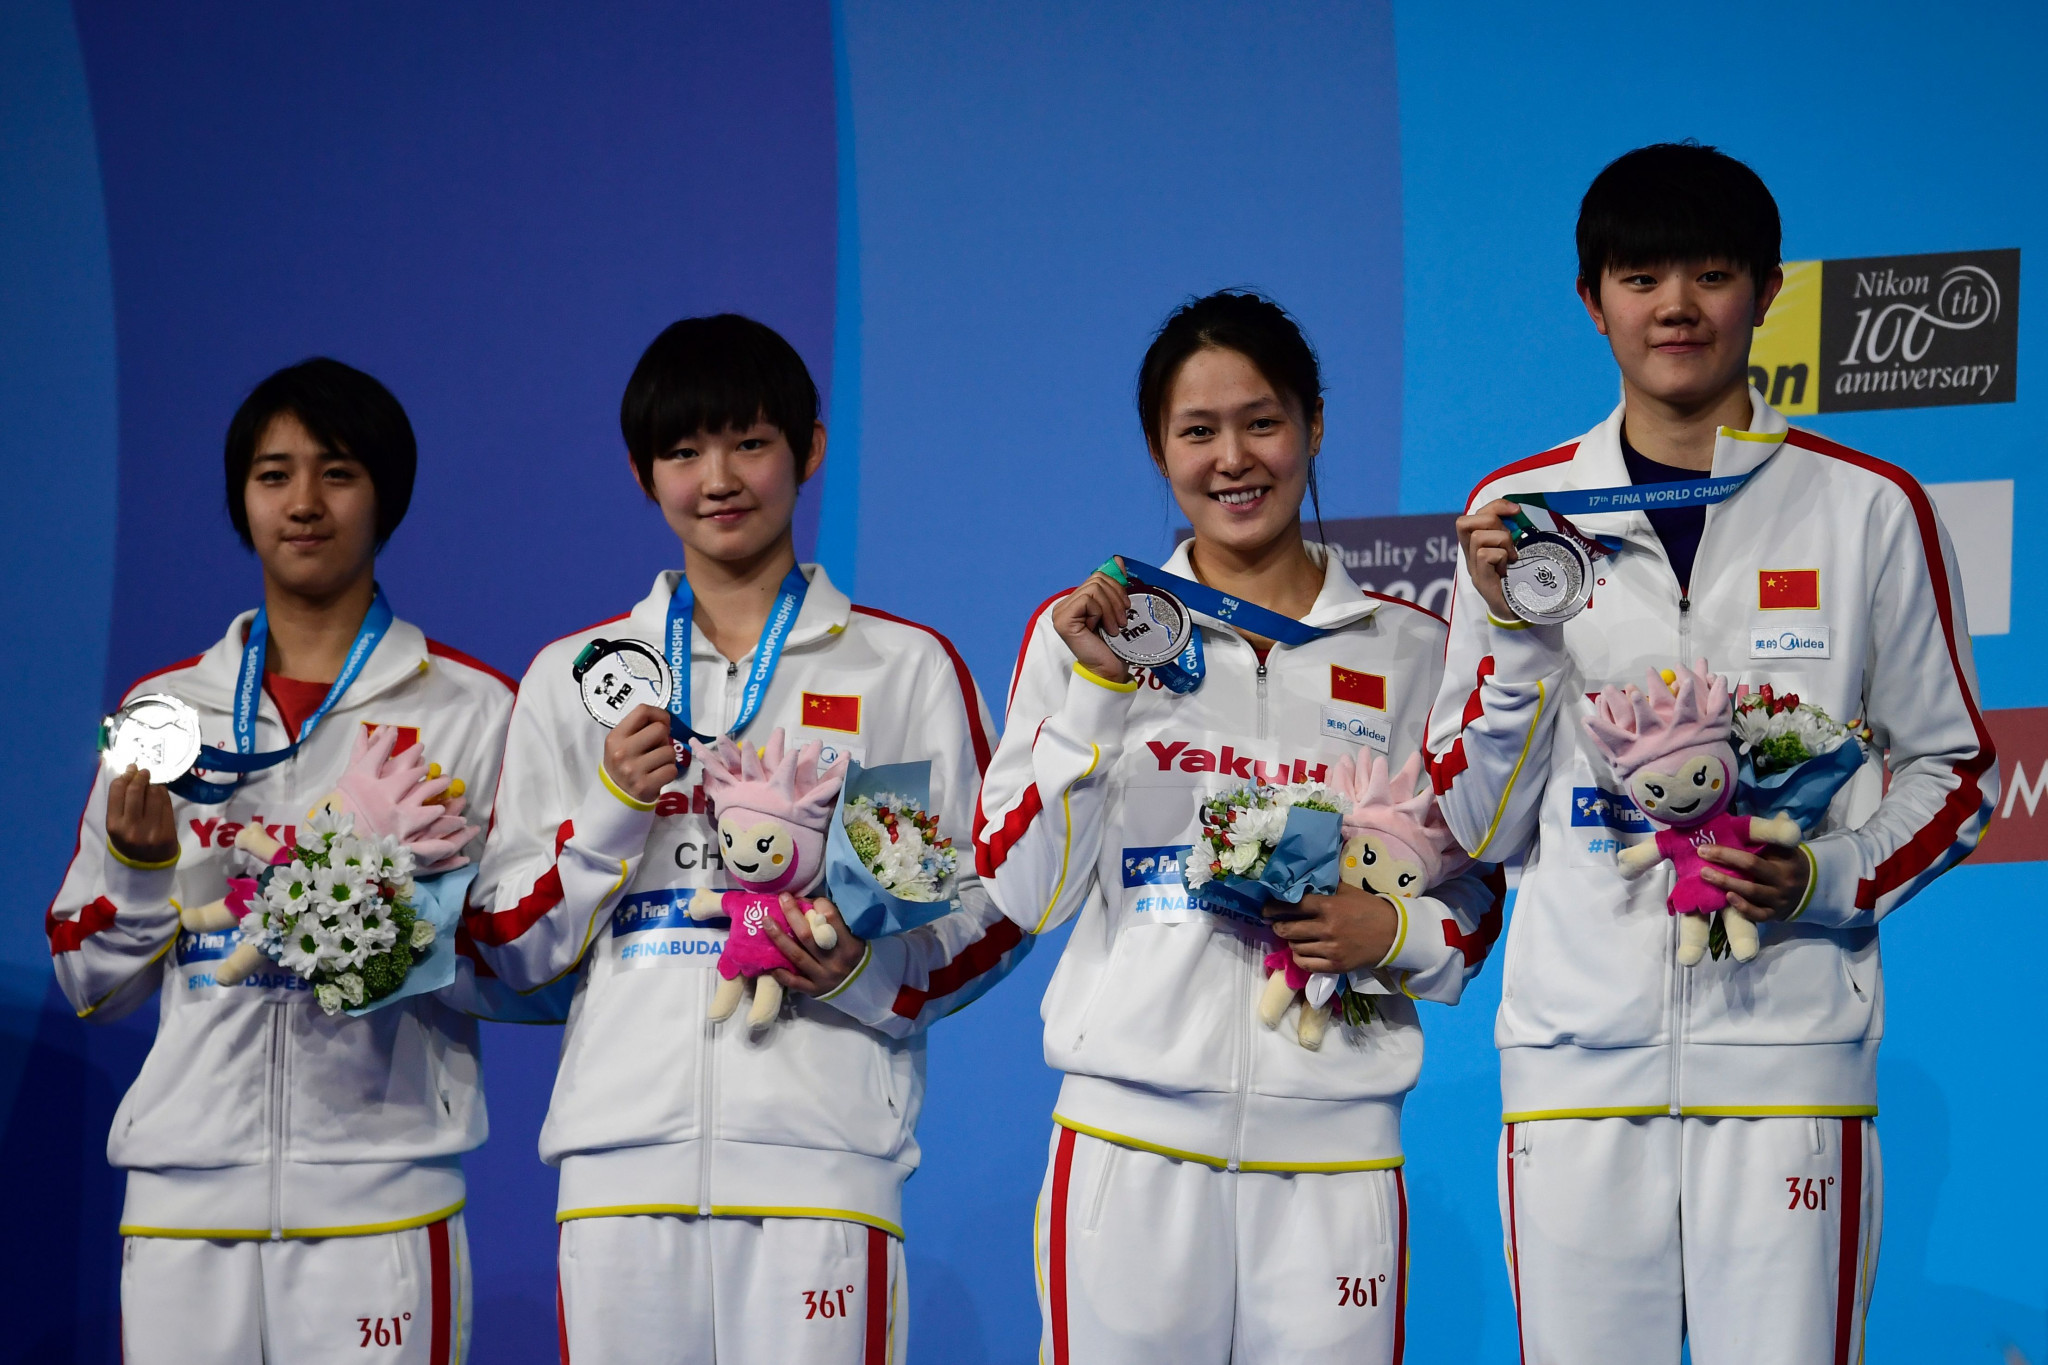 Liu Zixuan​, second left, won a silver medal as part of the 4x200m freestyle relay at this year's World Championships in Budapest ©Getty Images